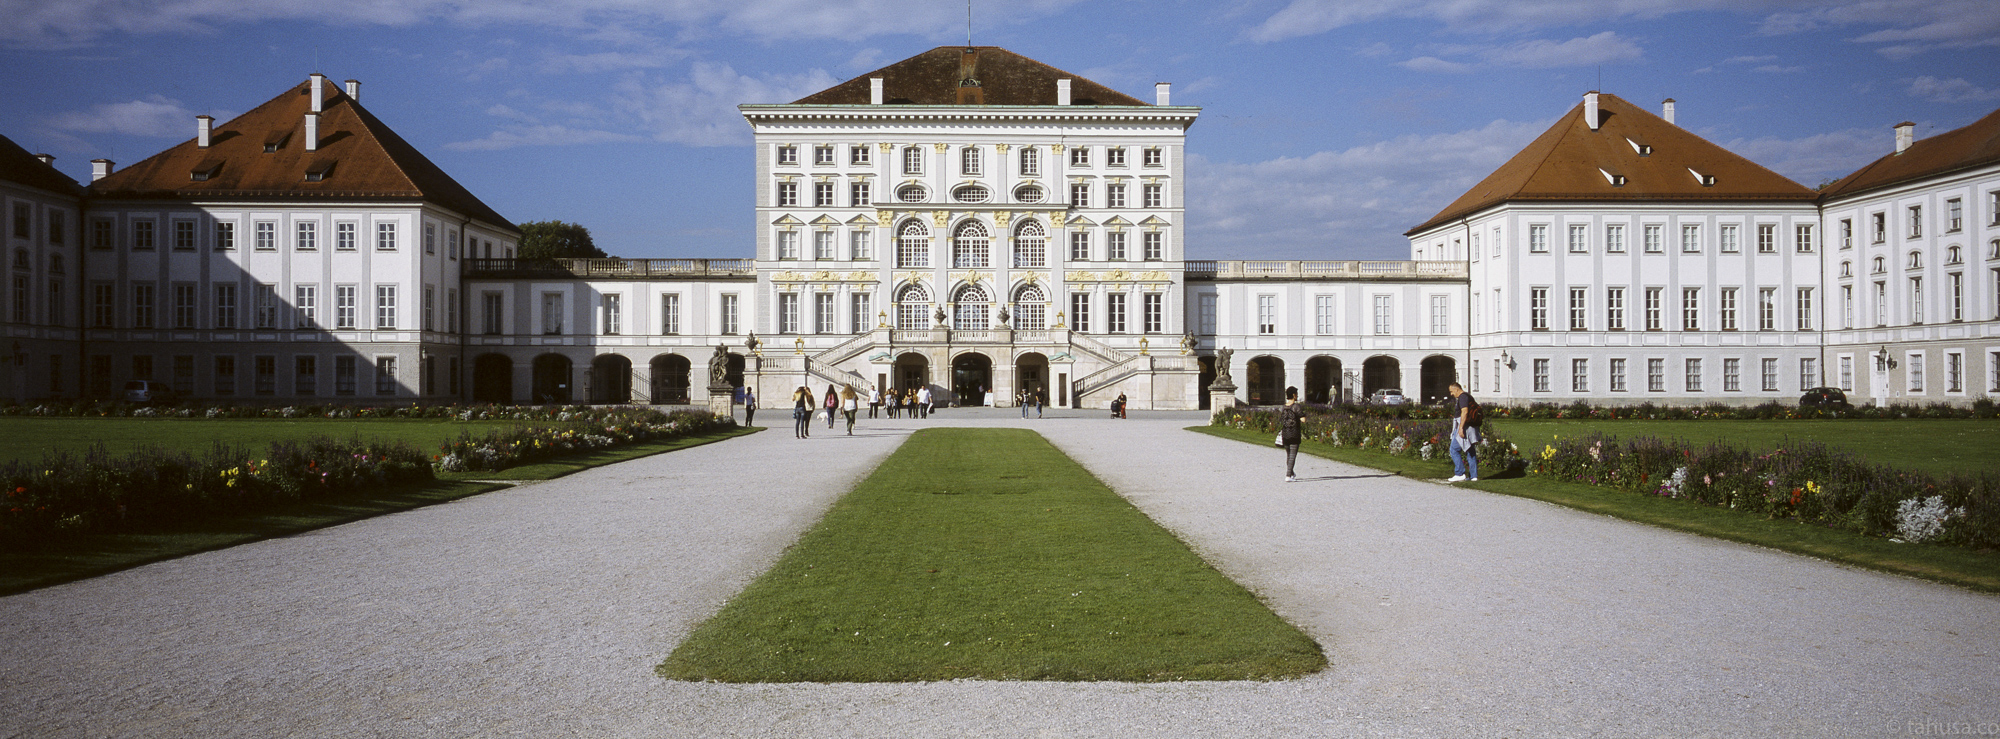 Munich-Germany-Nymphenburg Palace-Germany-slide-Hasselblad-xpan-xpanii-45mm-f4-lens-pano-panoramic-panorama-Long-format-135-film-Fuji-Fujifilm-Provia-RDPIII-RDP-100F